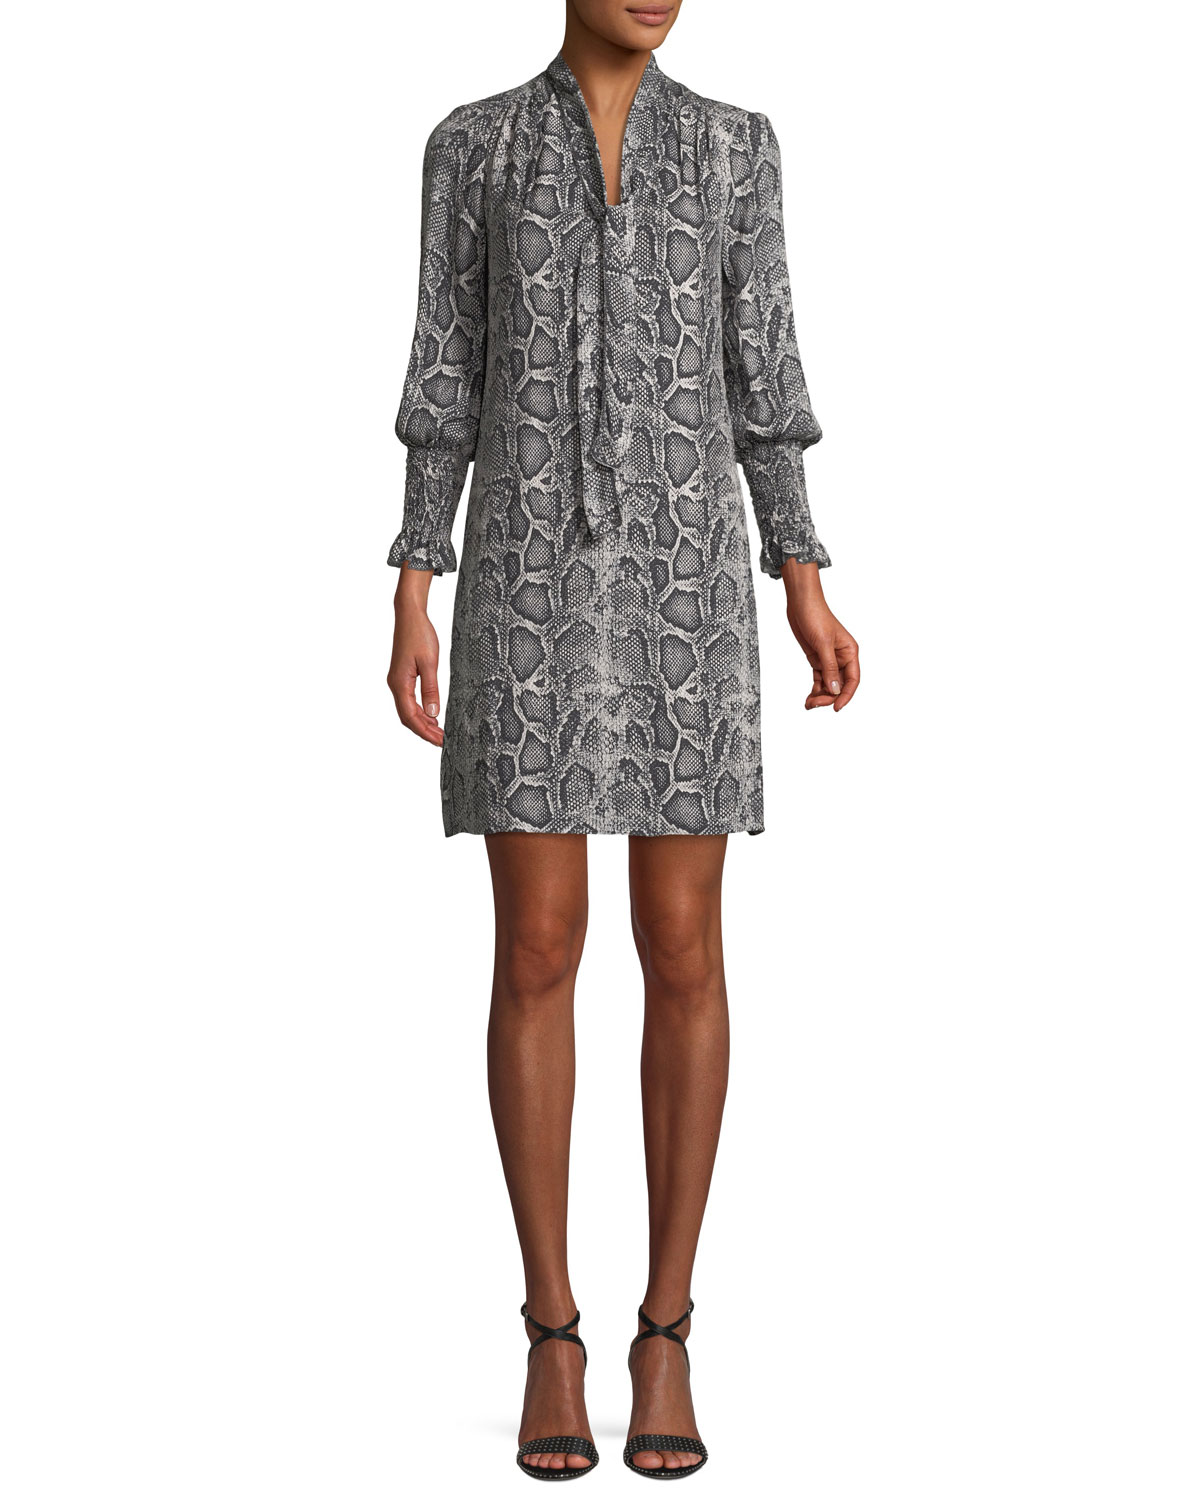 Snake-Print Tie-Neck Shift Dress